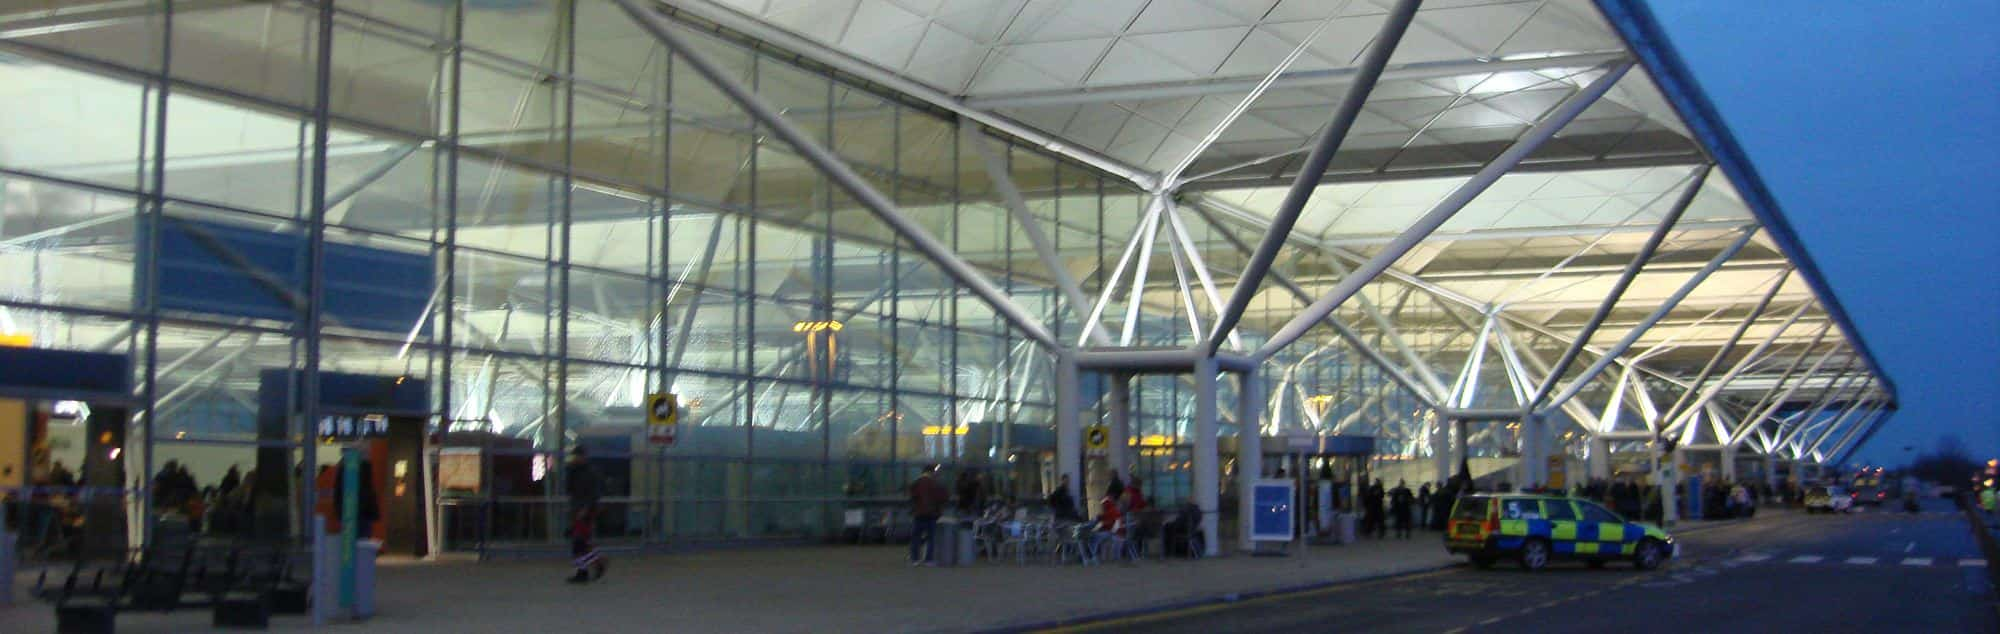 Airport london-stansted